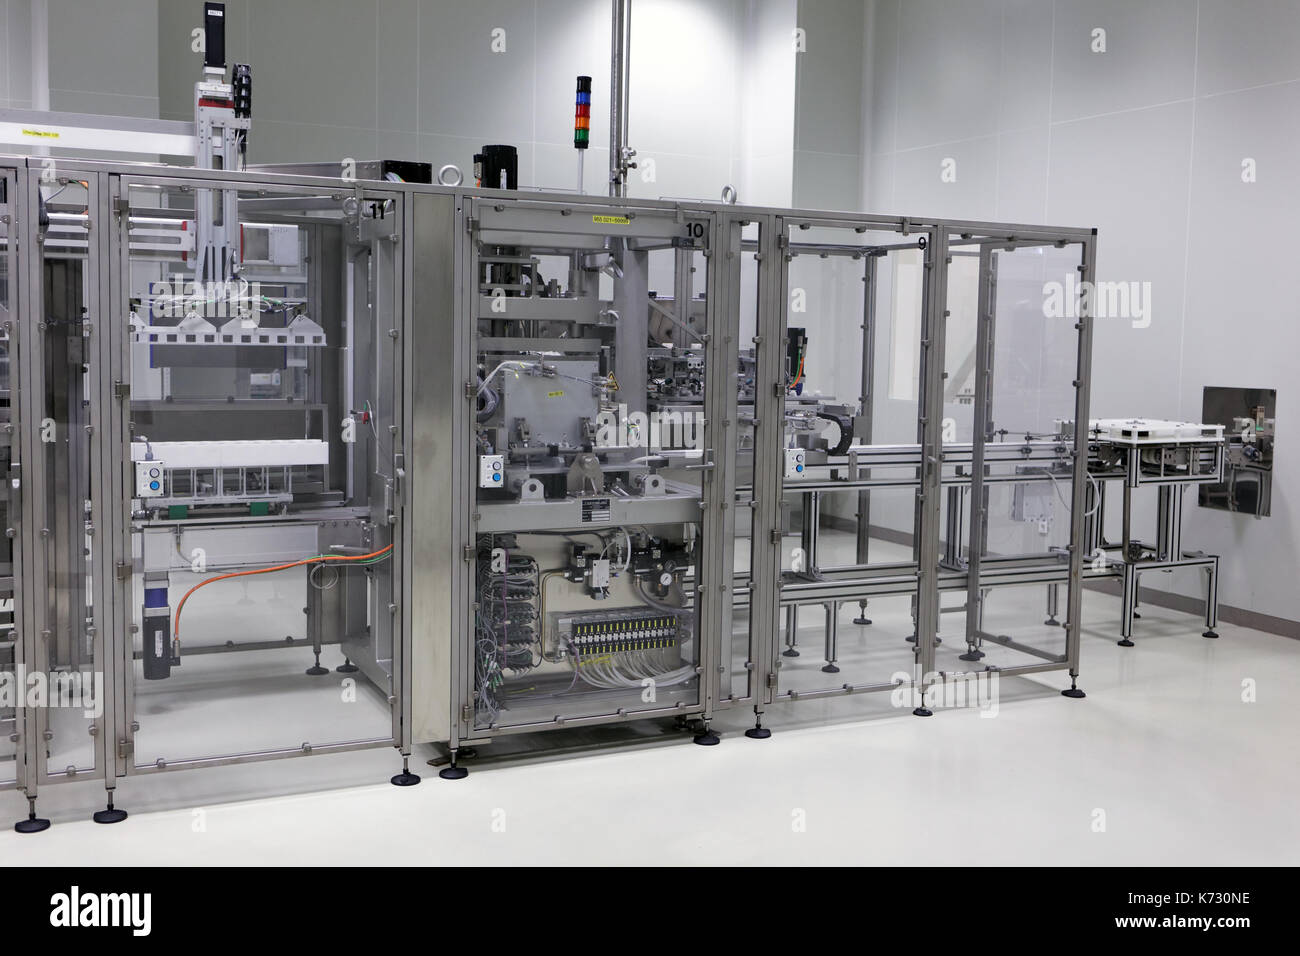 St. Petersburg, Russia - September 24, 2015: Production of infusion solutions on the Solopharm plant. The new modern pharmaceutical plant was built in - Stock Image